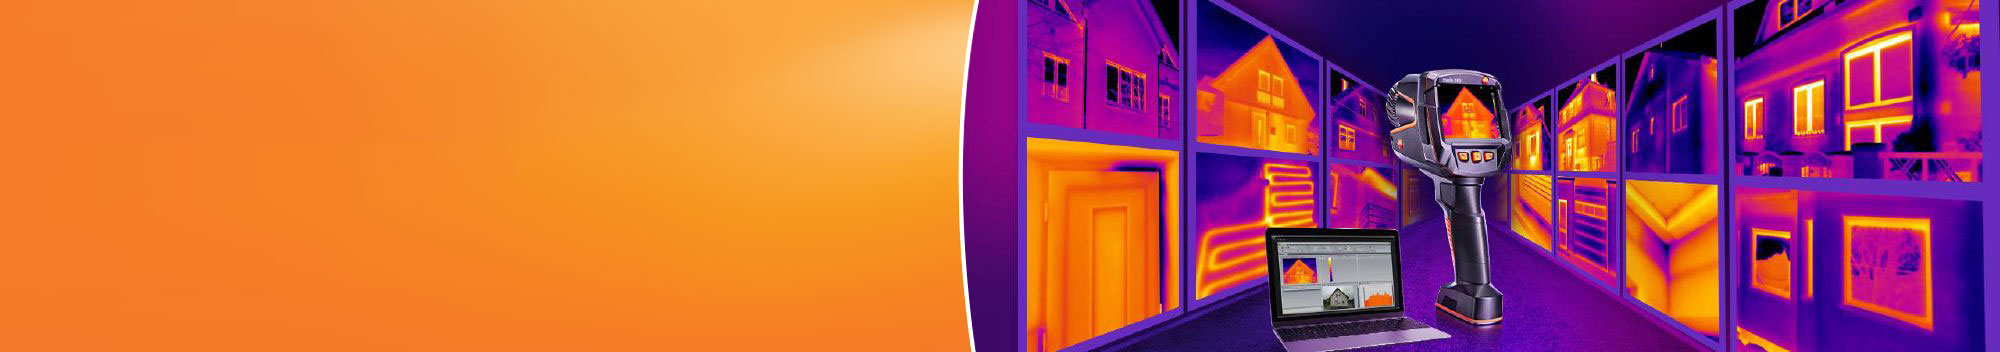 Sees Everything, Thinks For You. The New Thermal Imager Testo 883: Efficient Reinforcements For Energy Consultants